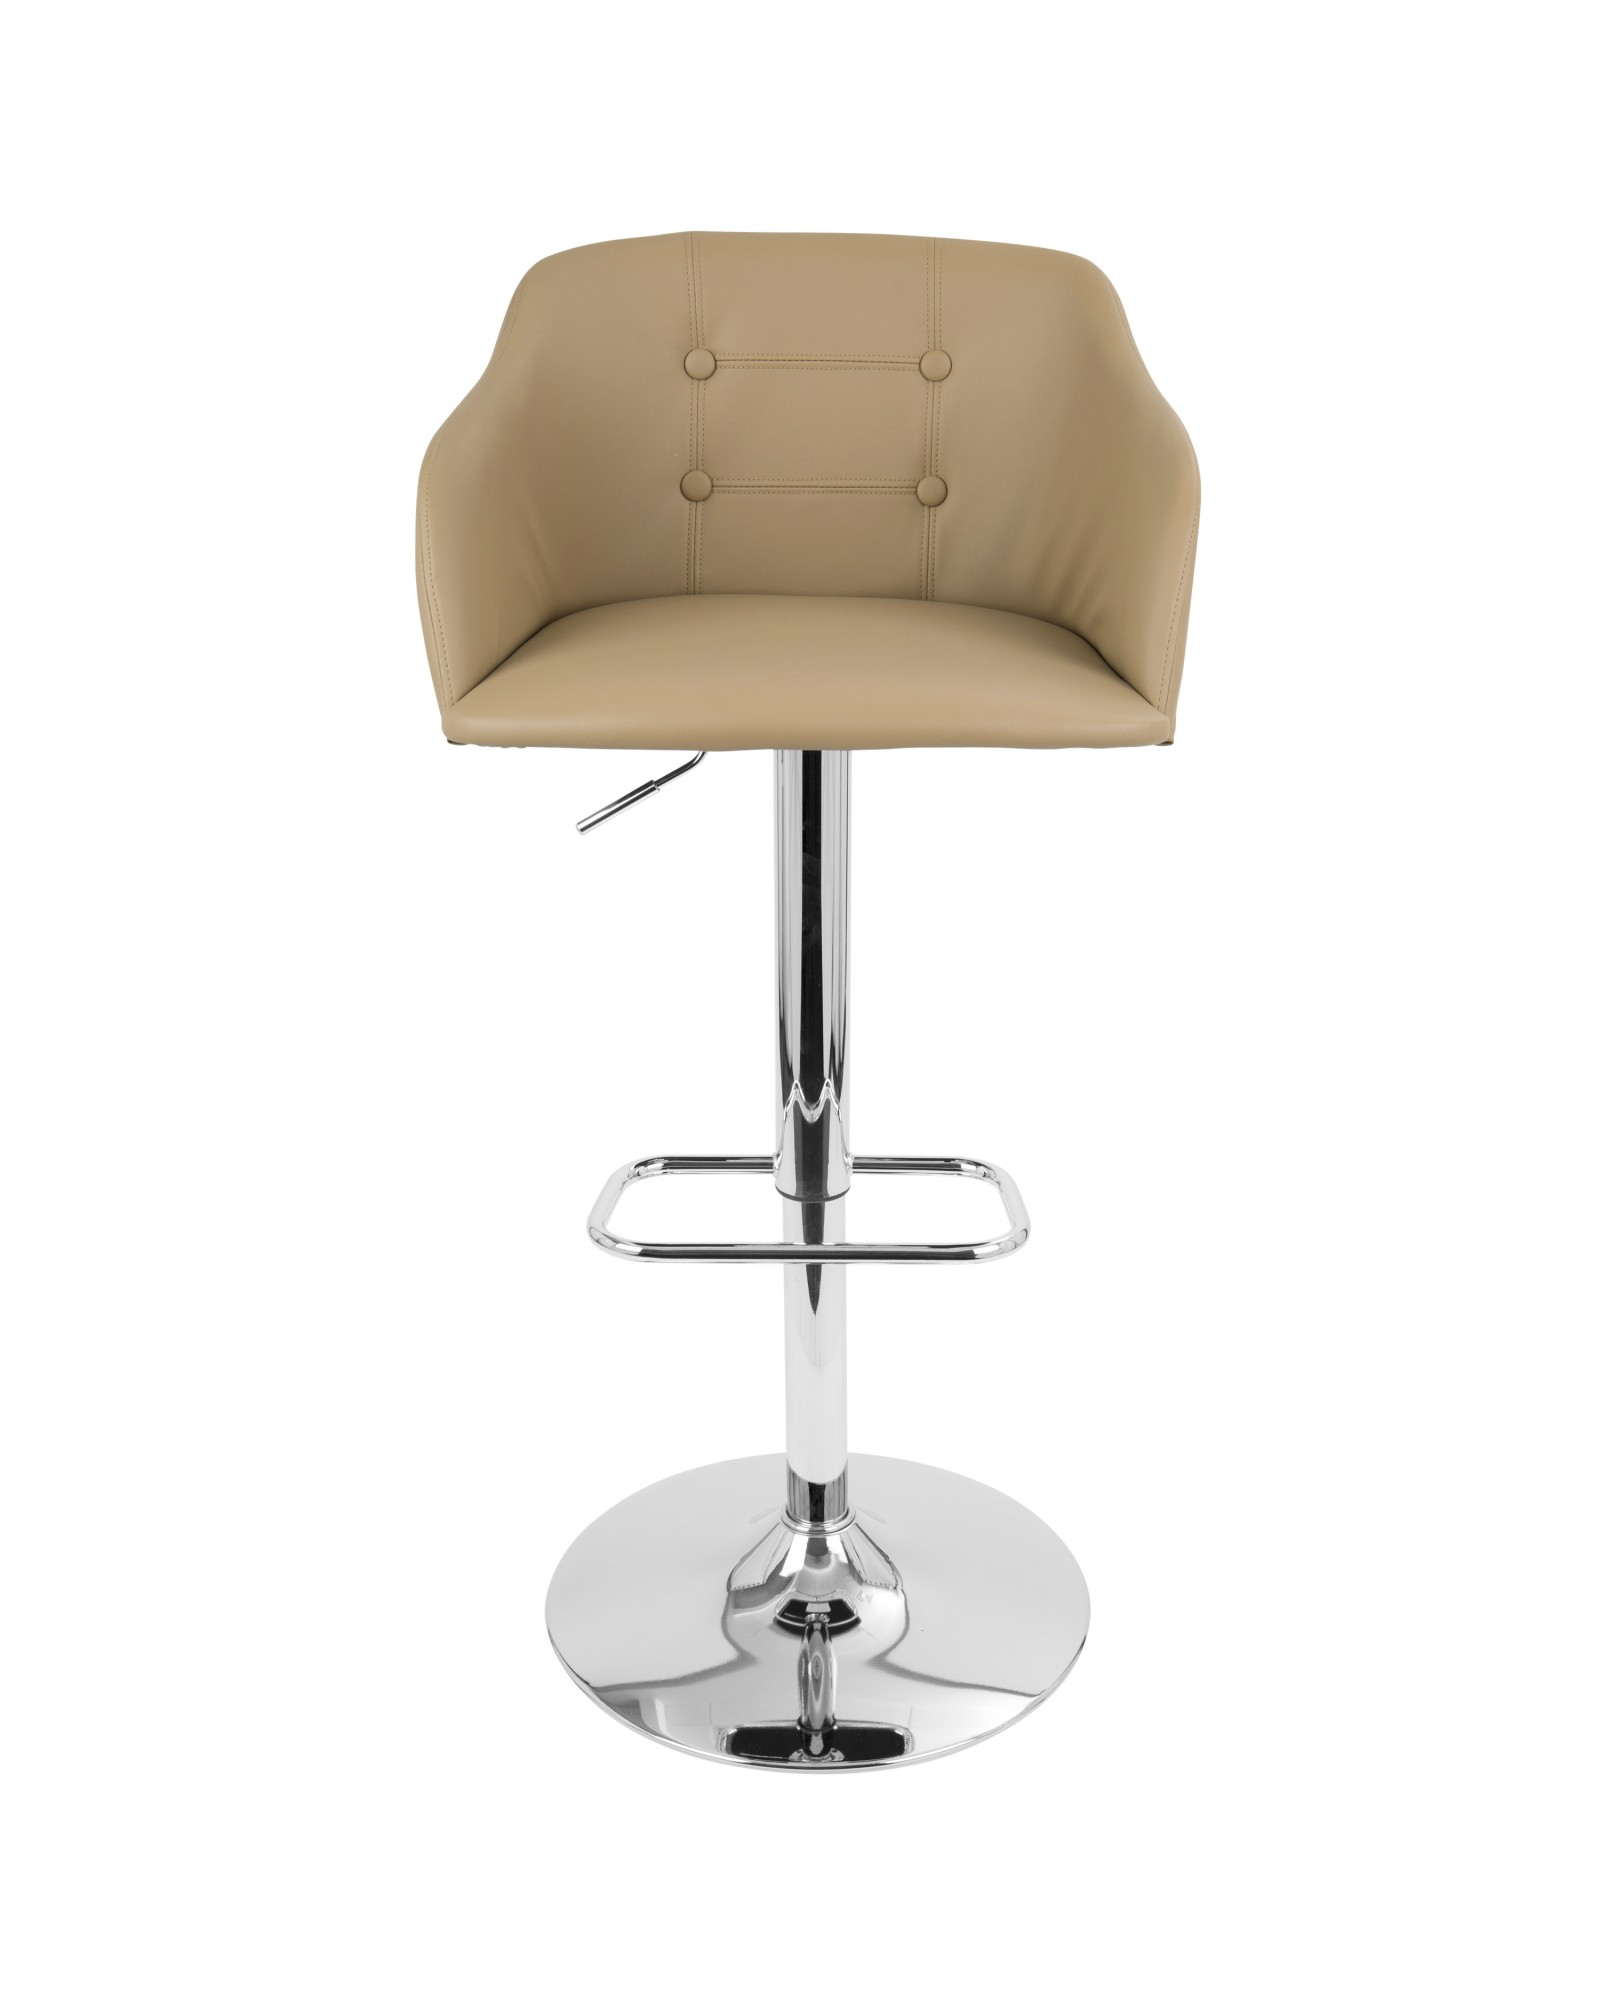 Campania Mid-Century Modern Adjustable Barstool with Swivel in Camel Faux Leather